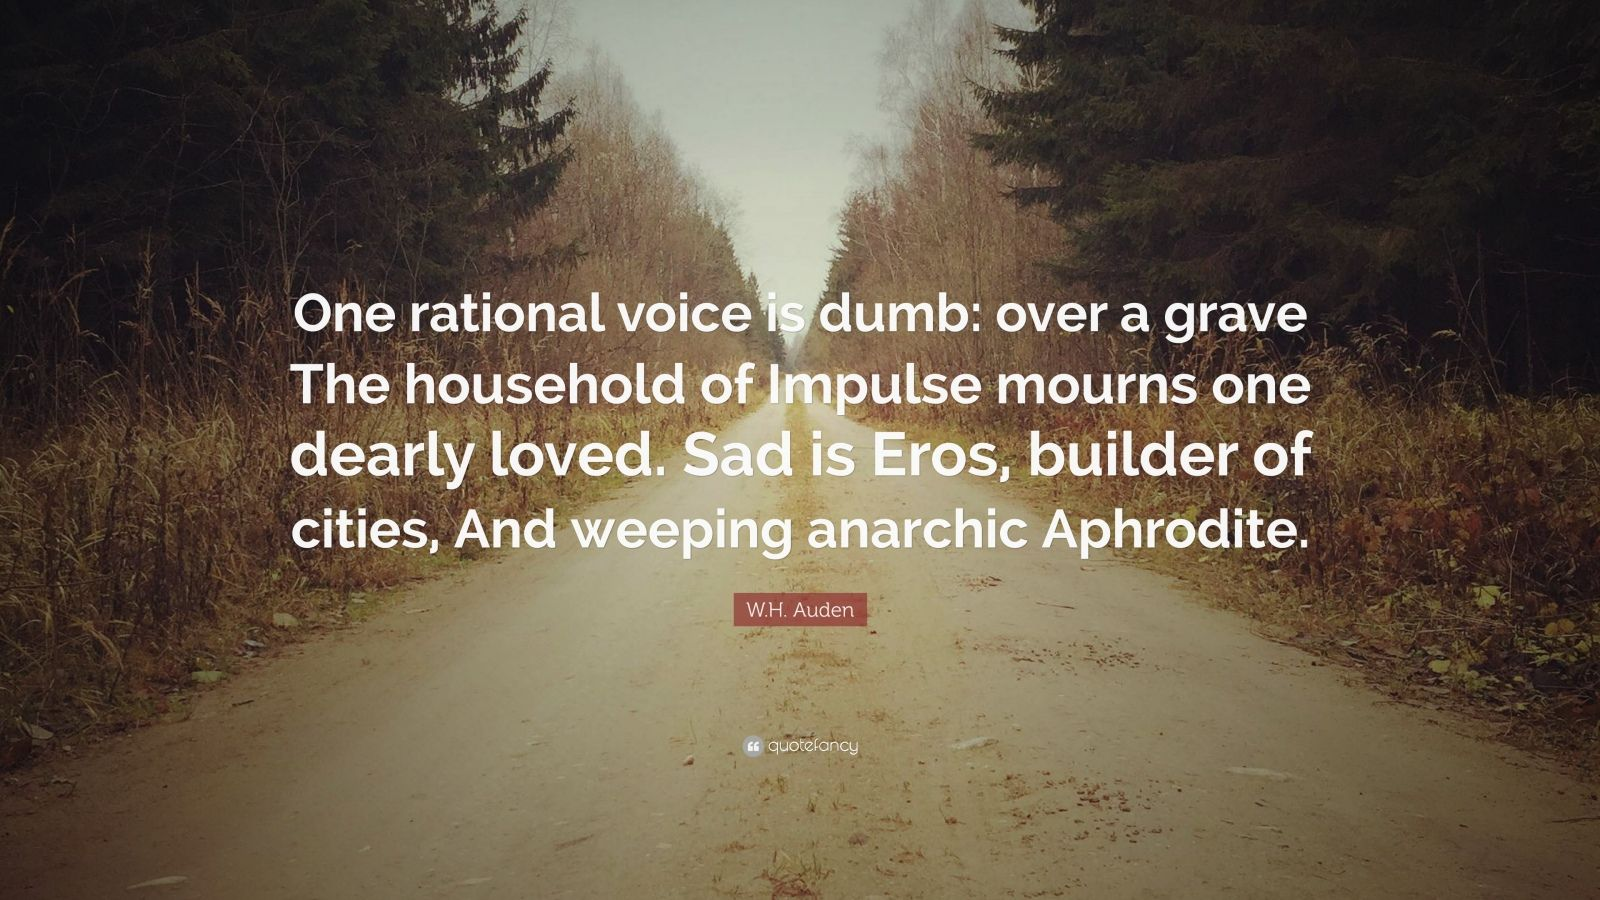 "W.H. Auden Quote: ""One rational voice is dumb: over a grave The household of Impulse mourns one dearly loved. Sad is Eros, builder of cities, And weeping anarchic Aphrodite."""